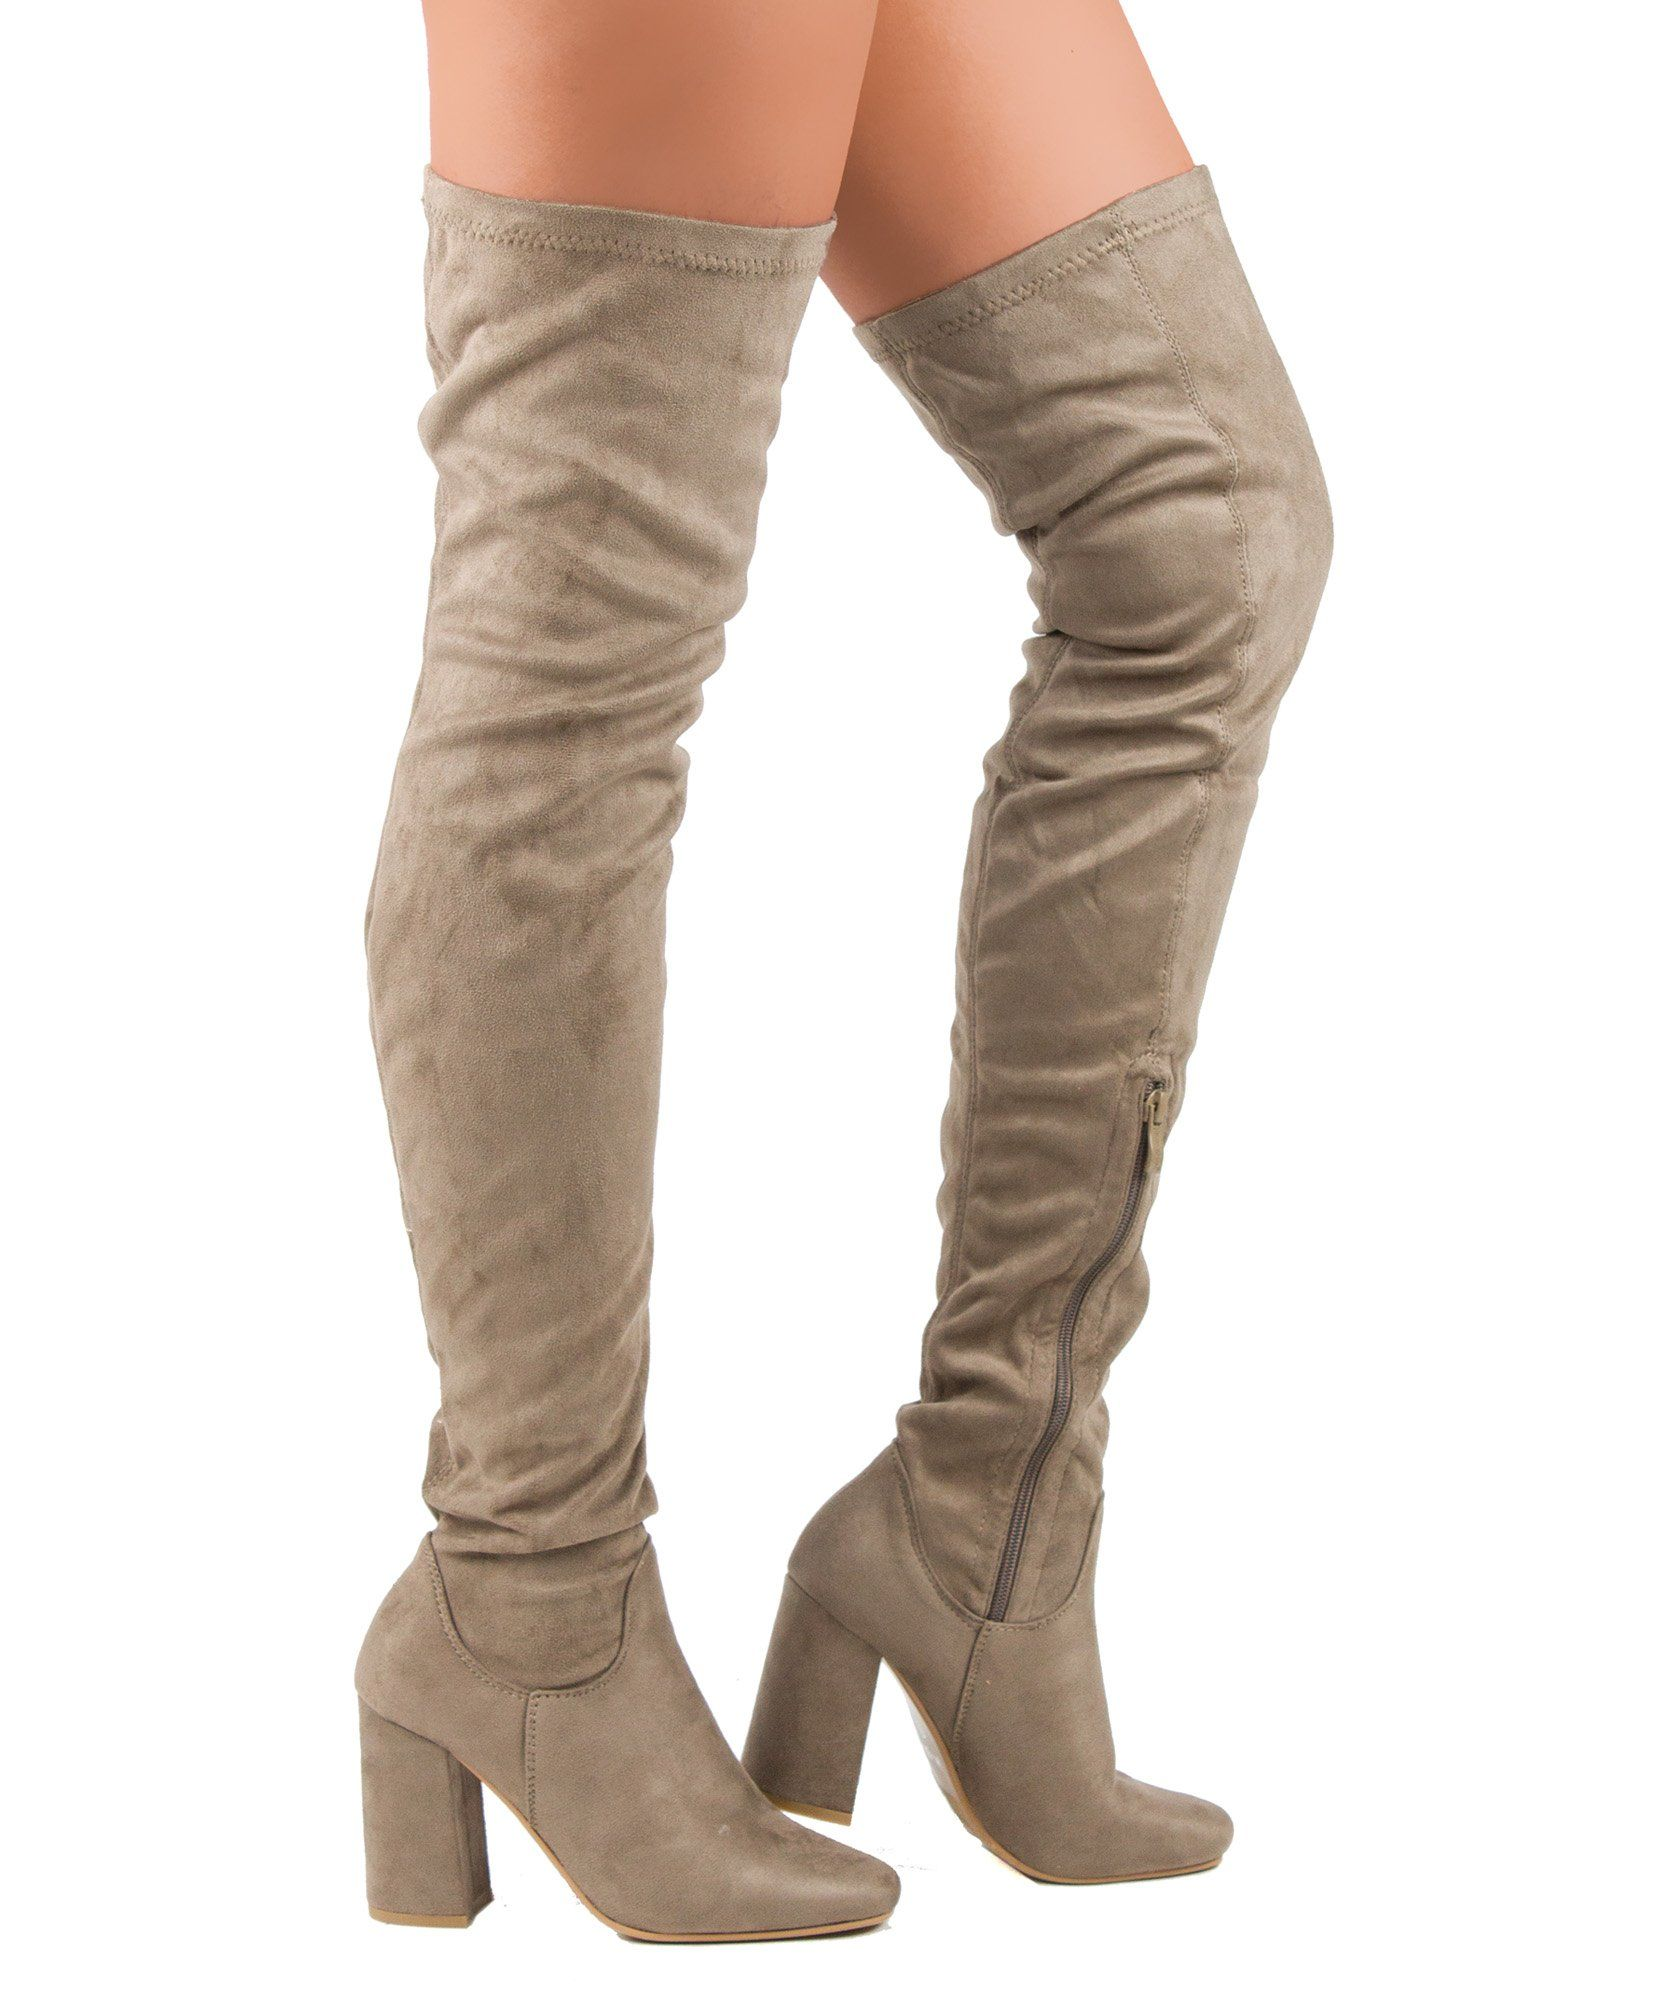 c5f47b8c52cd ... Thigh High Boots. RF ROOM OF FASHION Womens Faux Suede Fitted Flat To  Low Block Heel Over The Knee